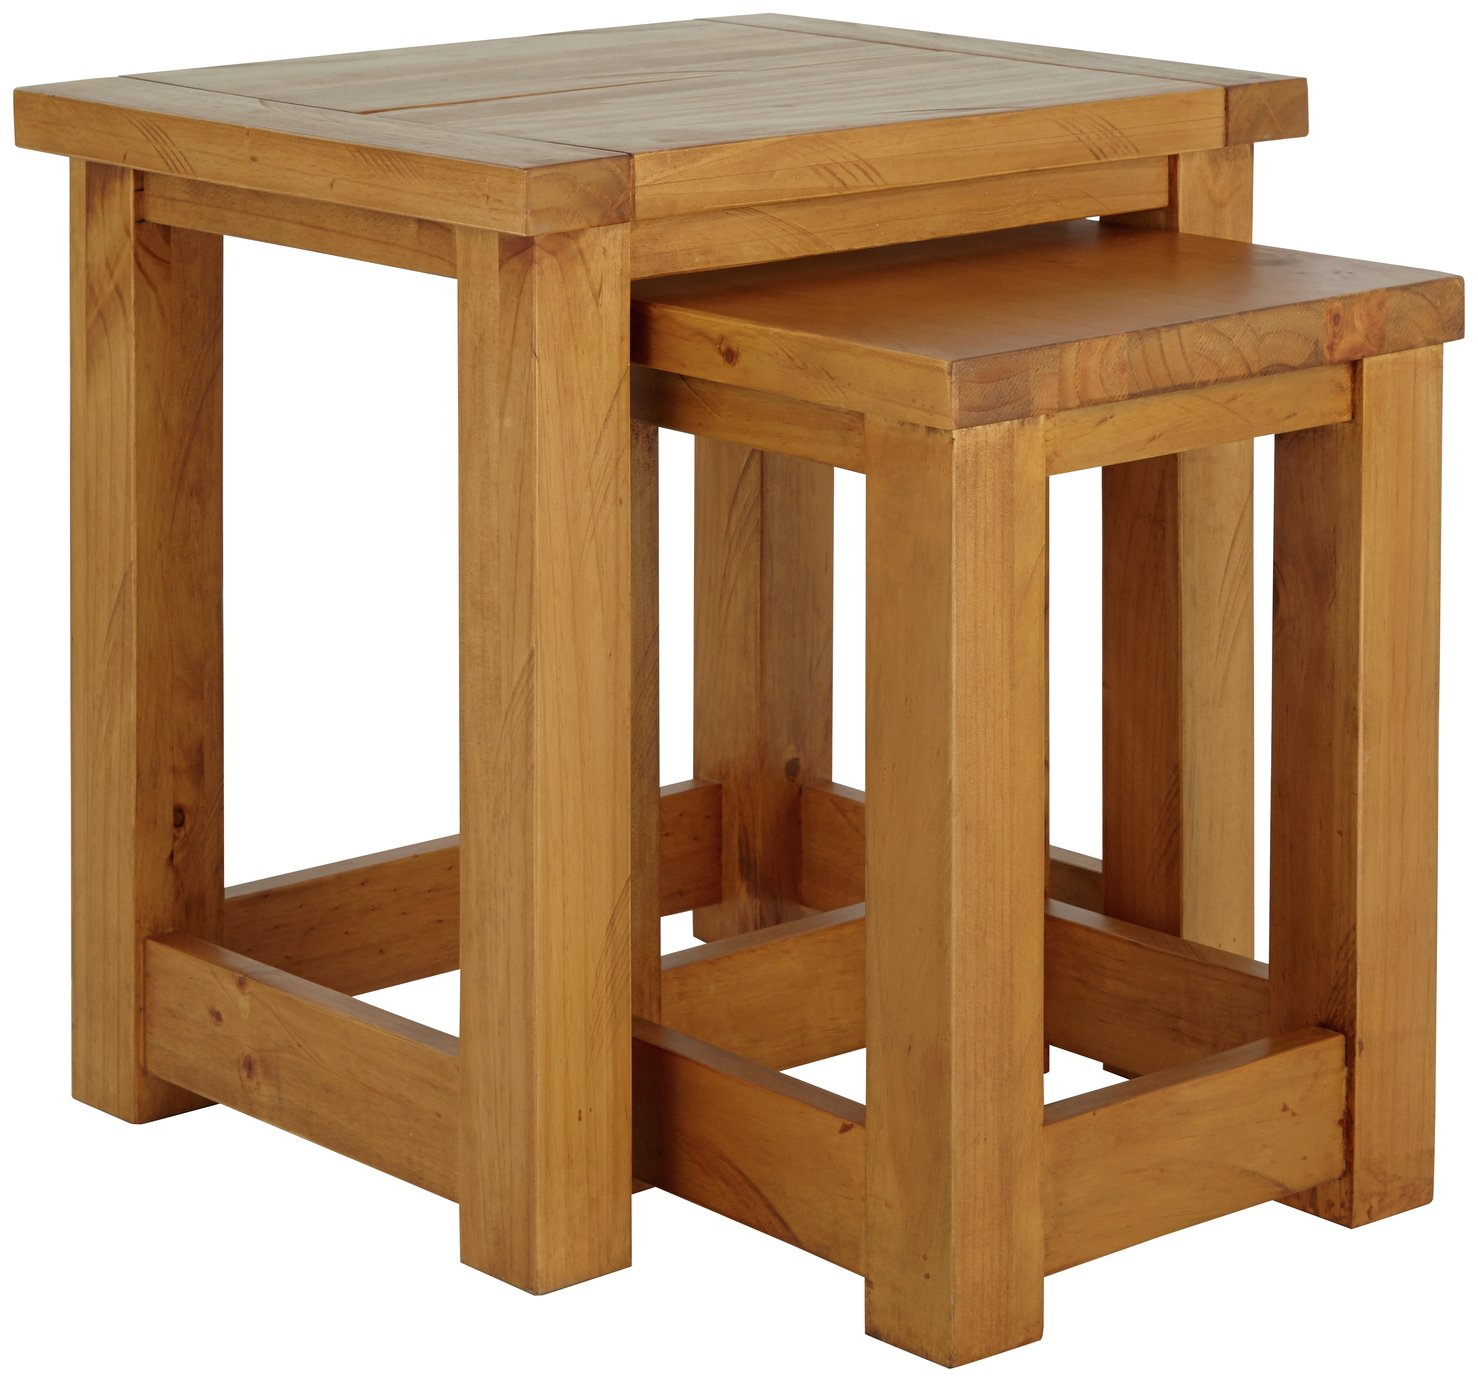 Argos Home Harvard Nest of 2 Tables - Solid Pine